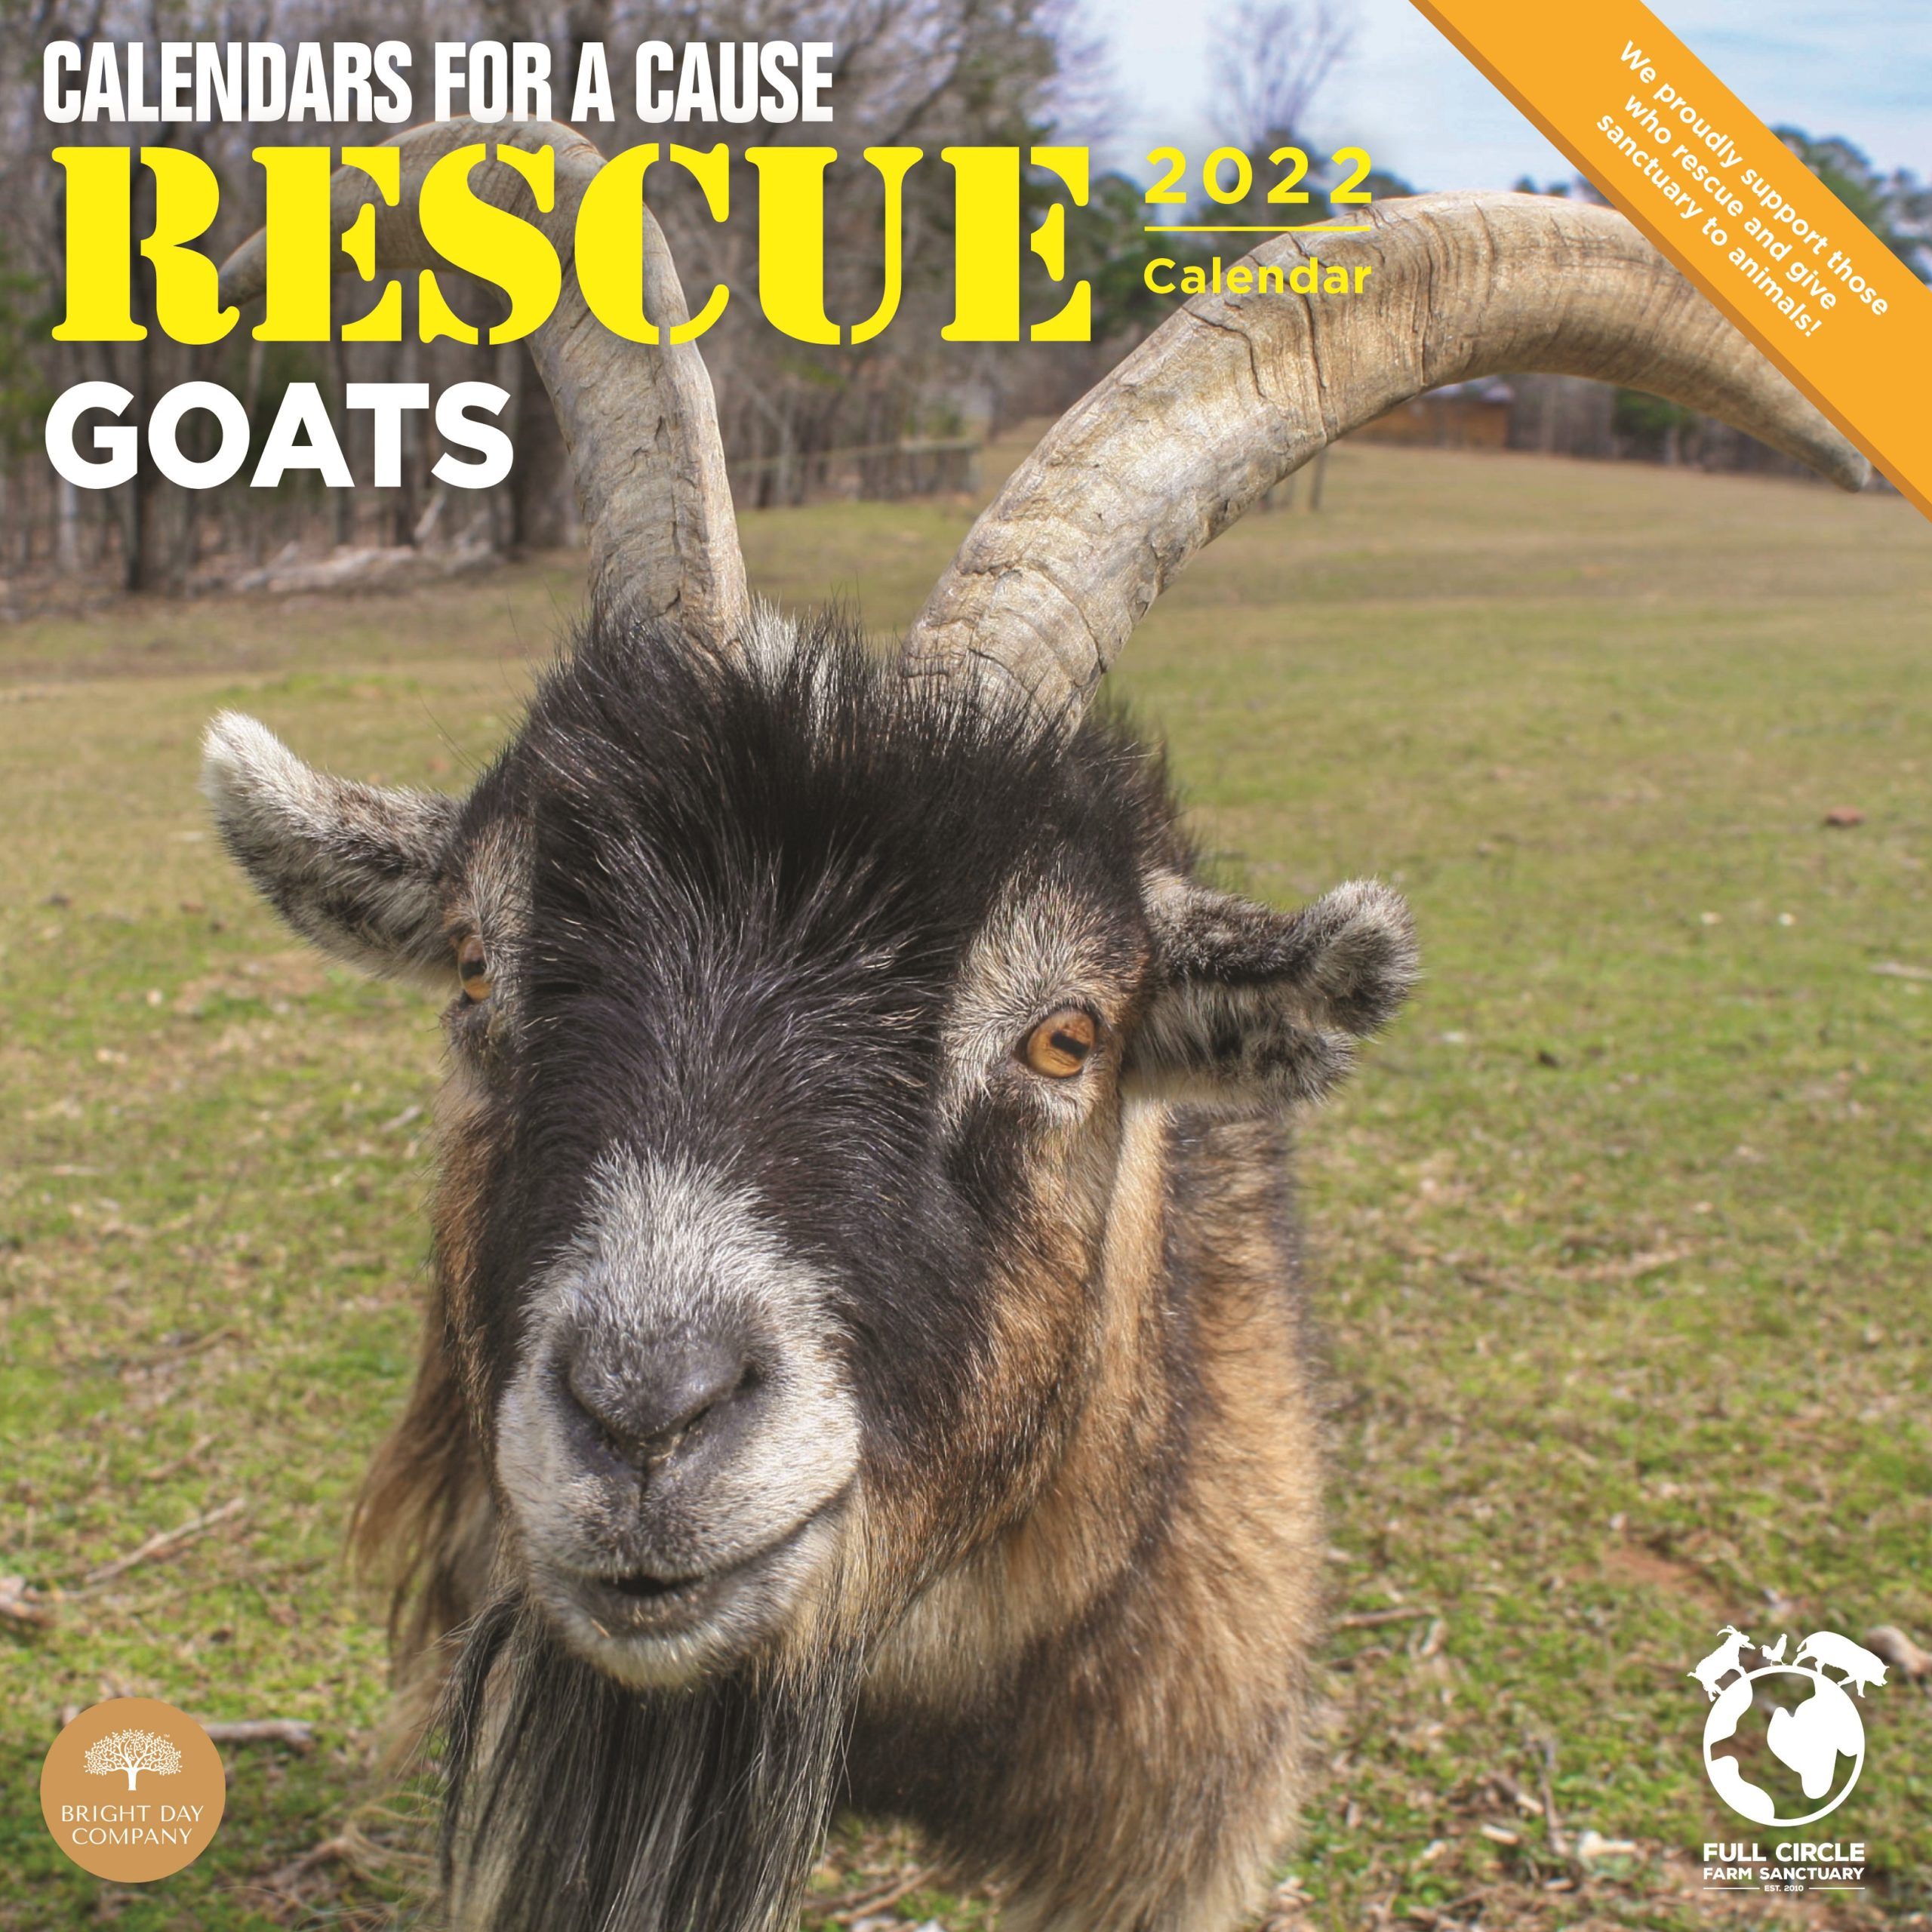 2022 Rescue Goats Calendars for a Cause Wall Calendar by Bright Day, 12 x 12 Inch